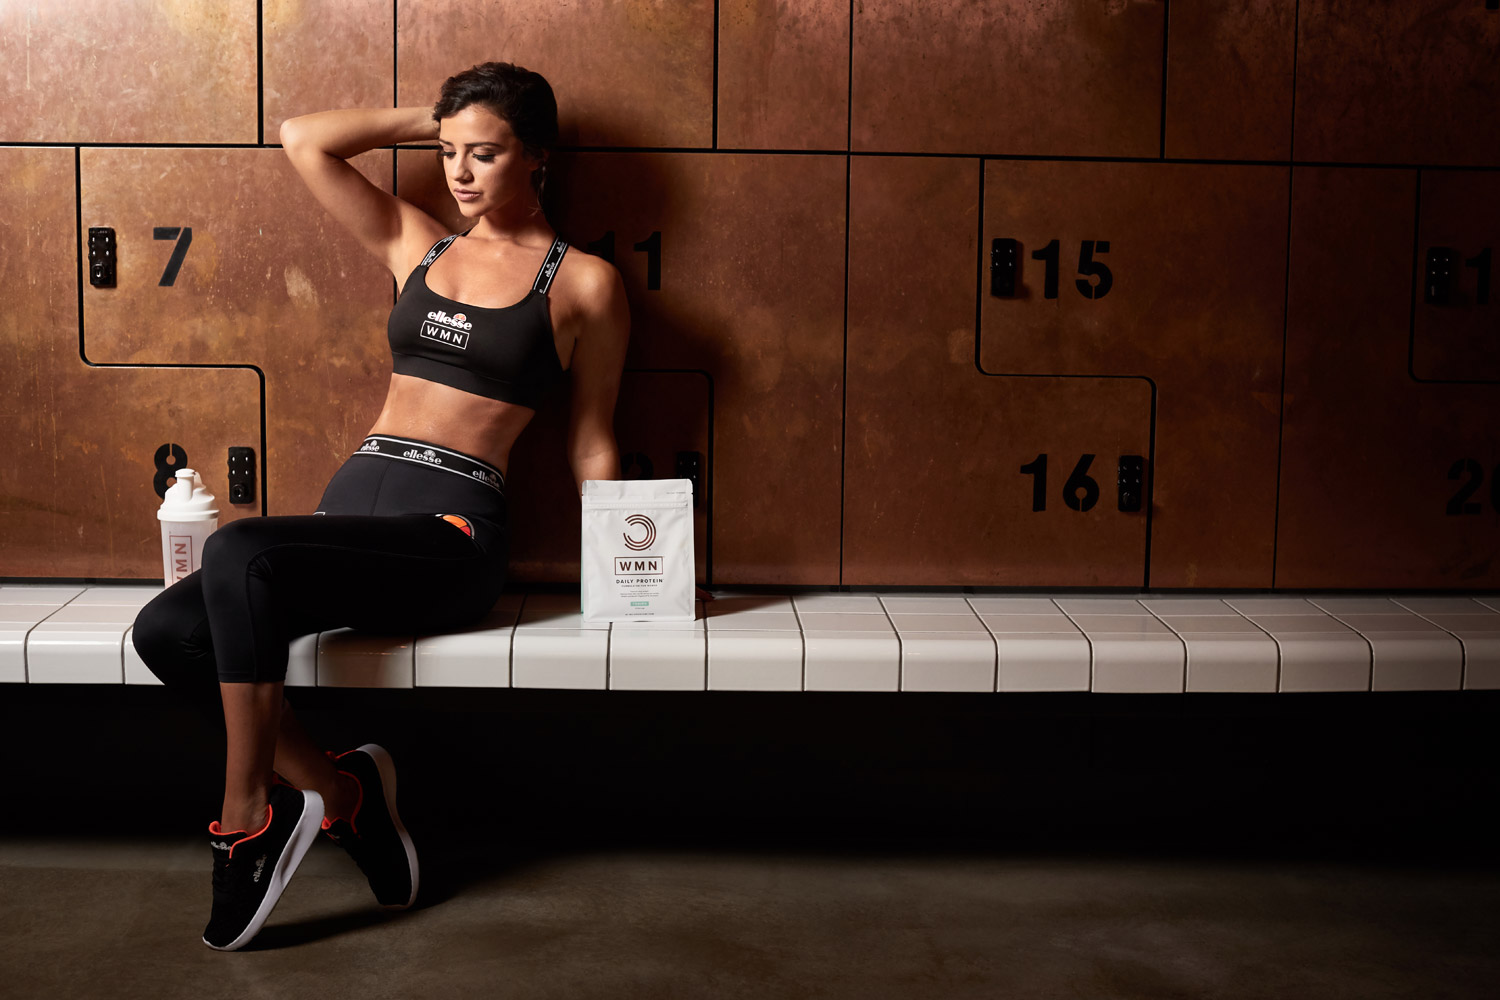 Lucy Mecklenburgh ambassador for WMN Health and Nutrition range.